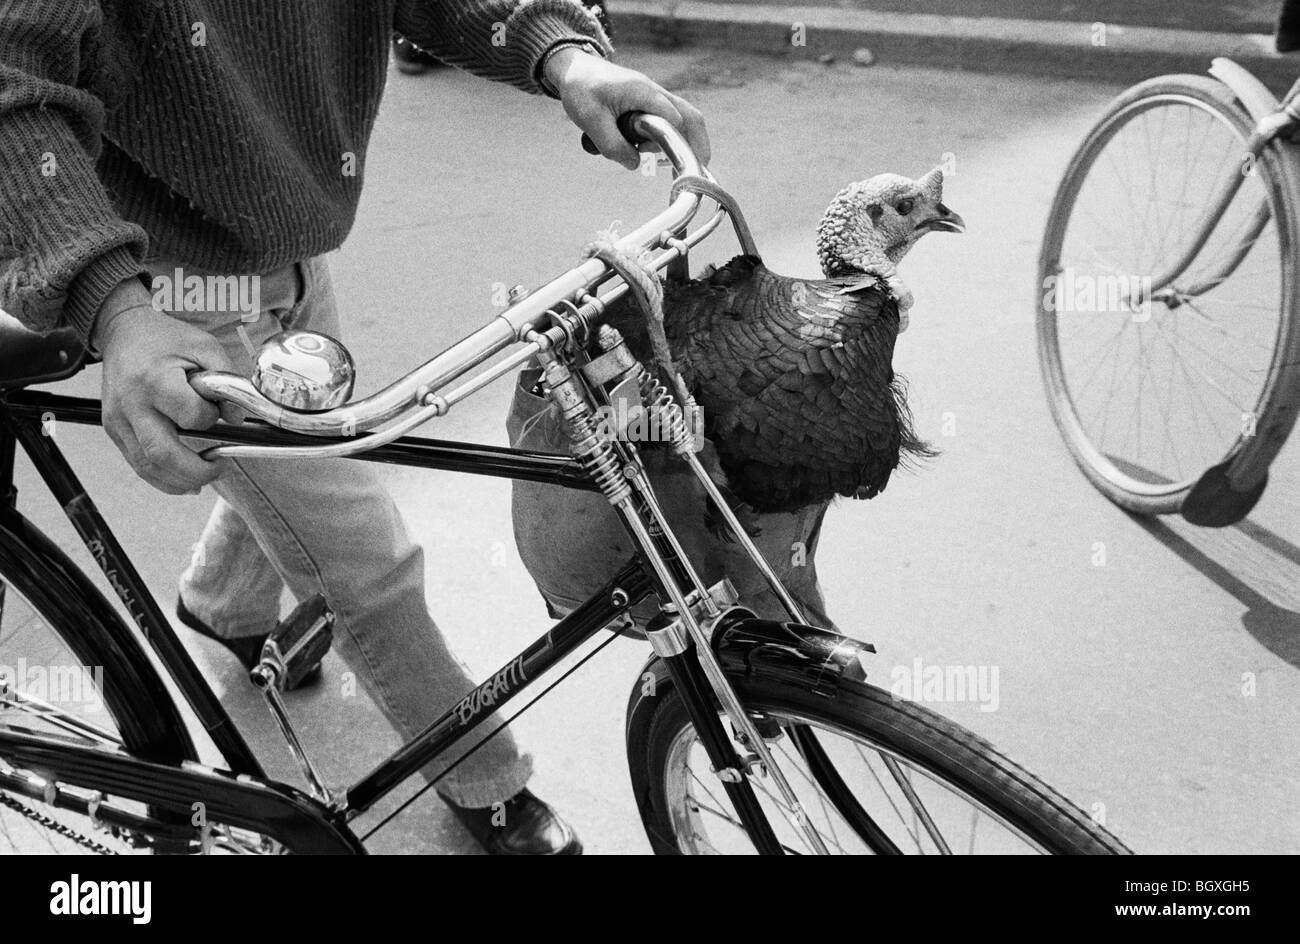 Turkey being transported from market on bike, TIRANA, ALBANIA, MAY' 92 - Stock Image